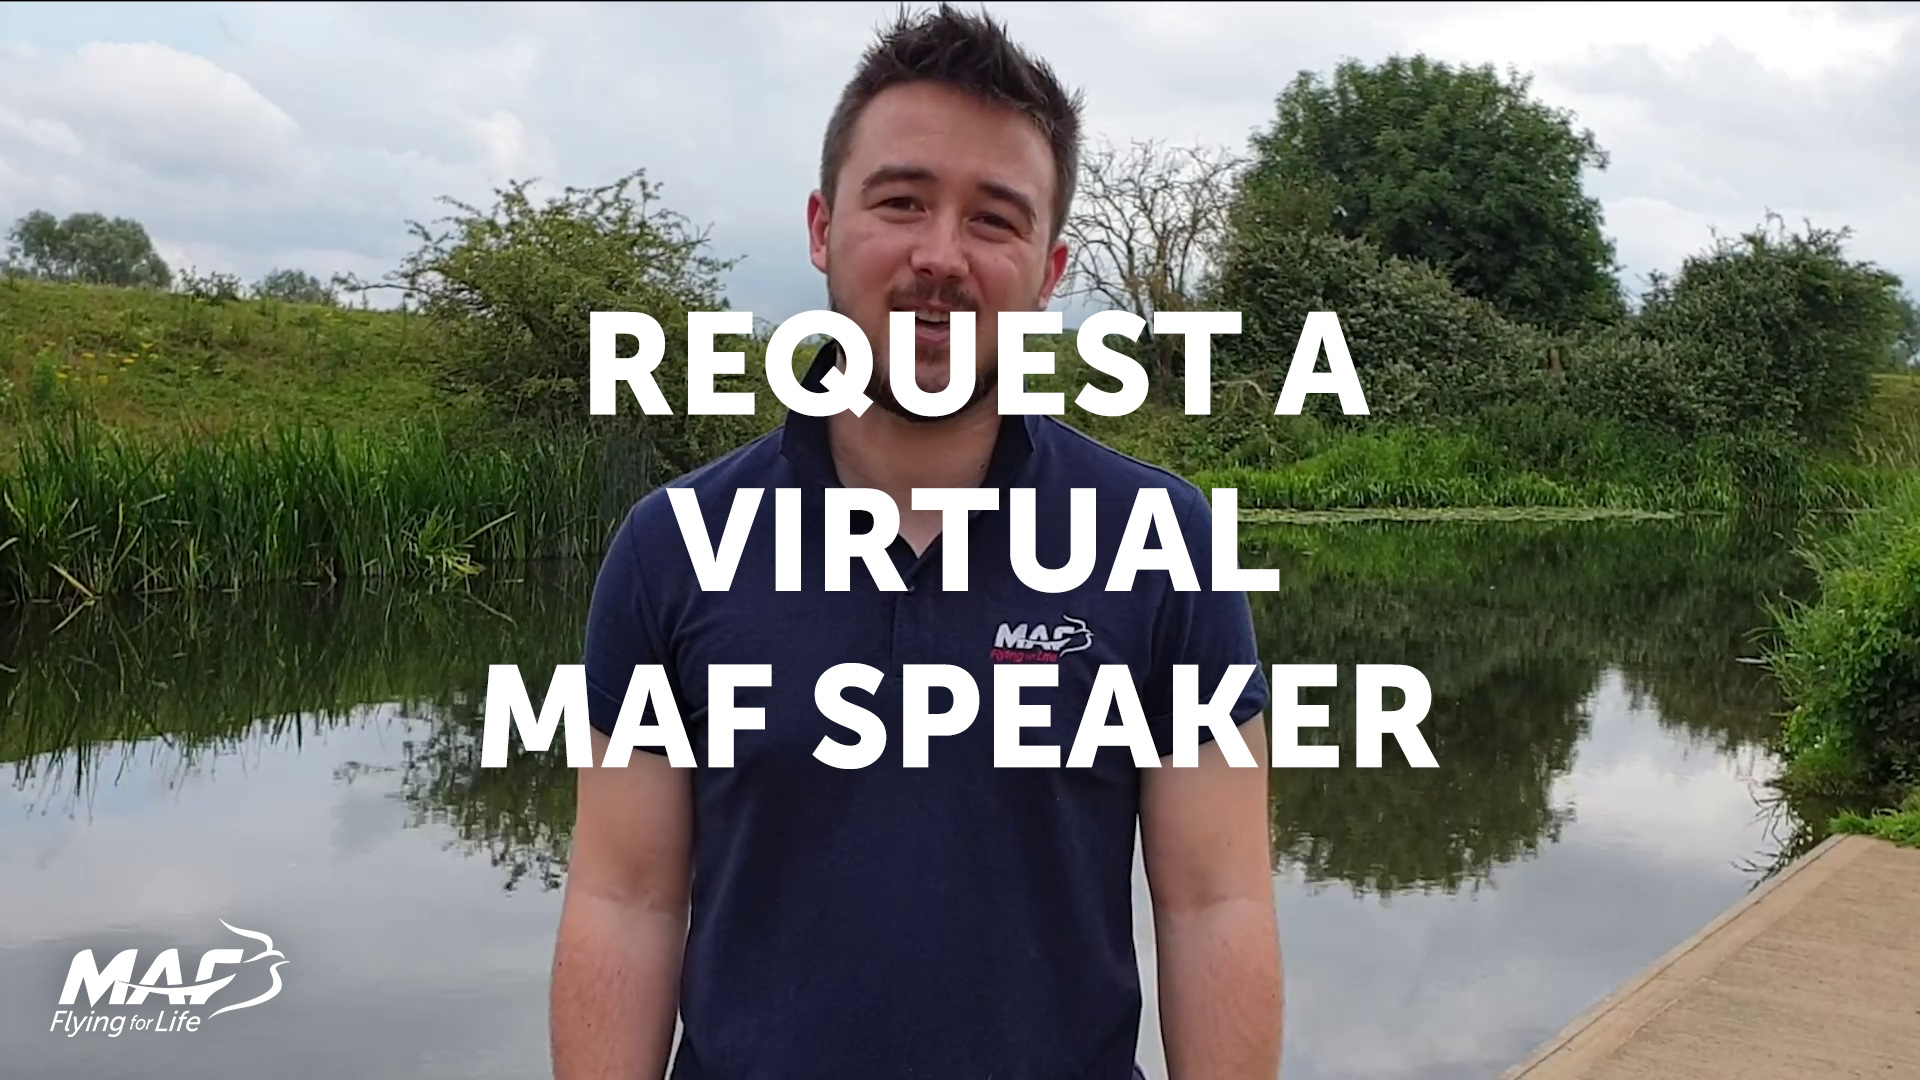 Request a Virtual MAF Speaker